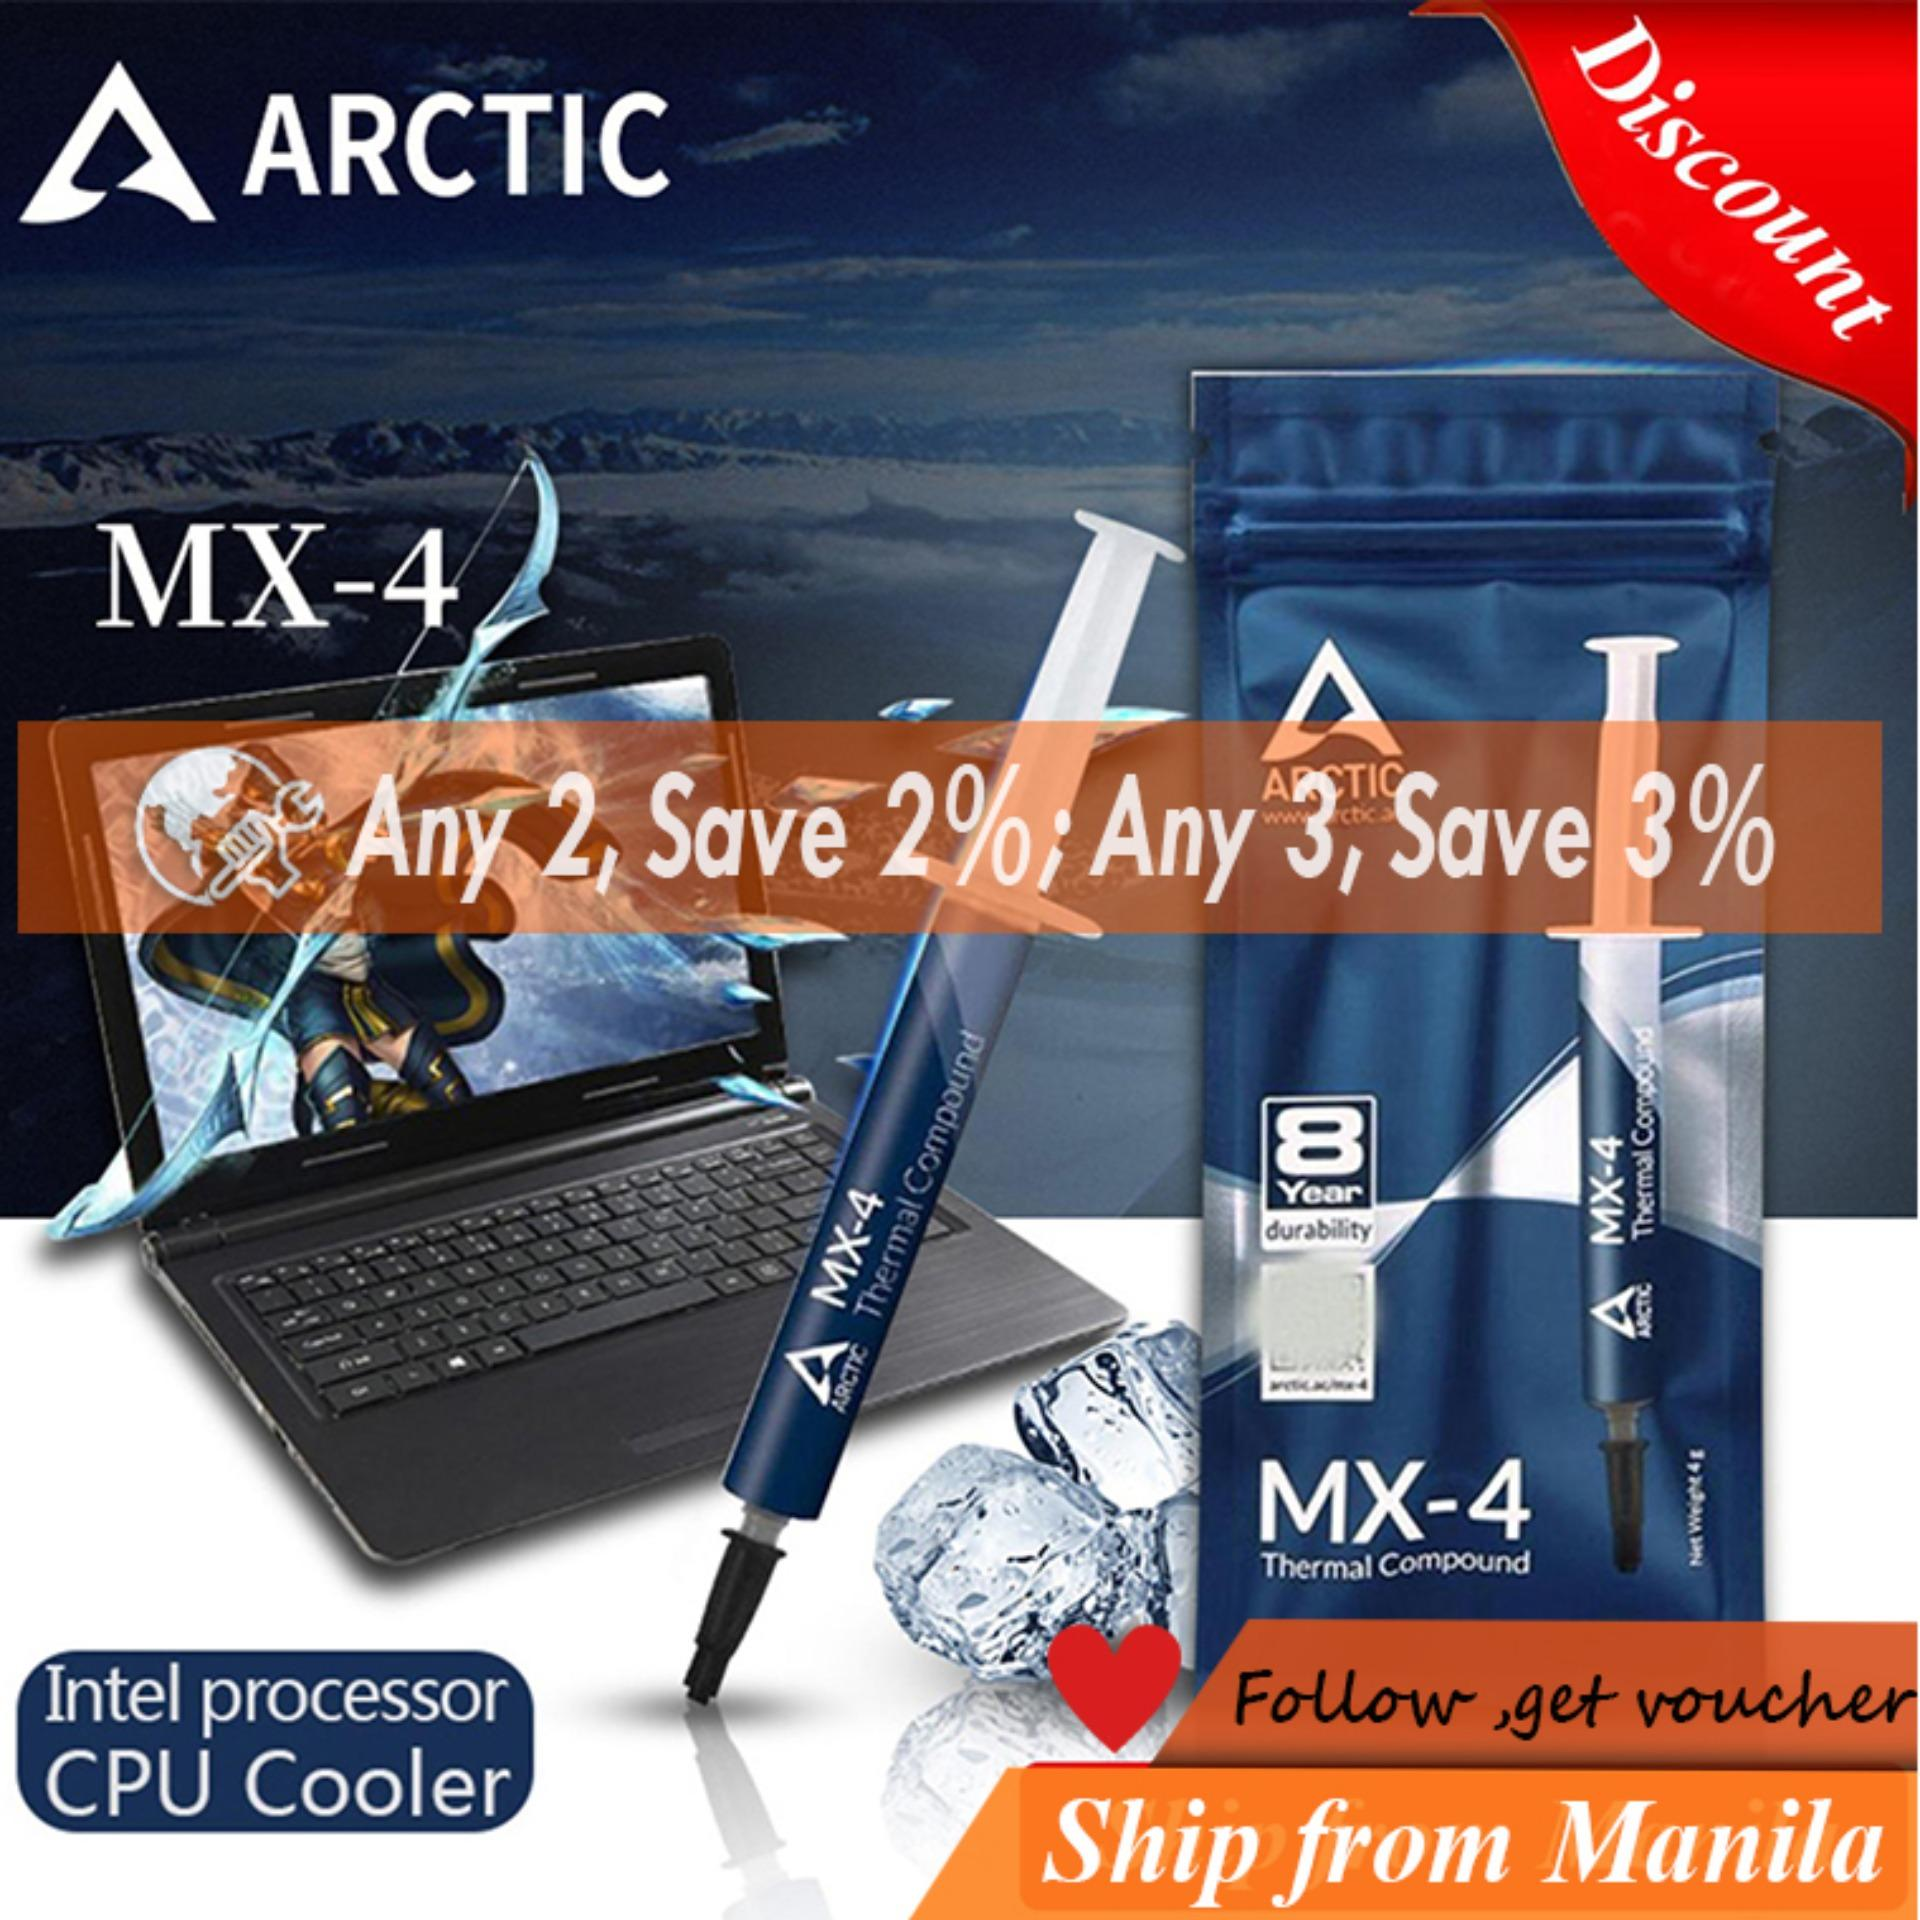 ARCTIC MX-4 4g AMD Intel processor CPU Cooler Cooling Fan Thermal Grease  VGA Compound Heatsink Plaster paste